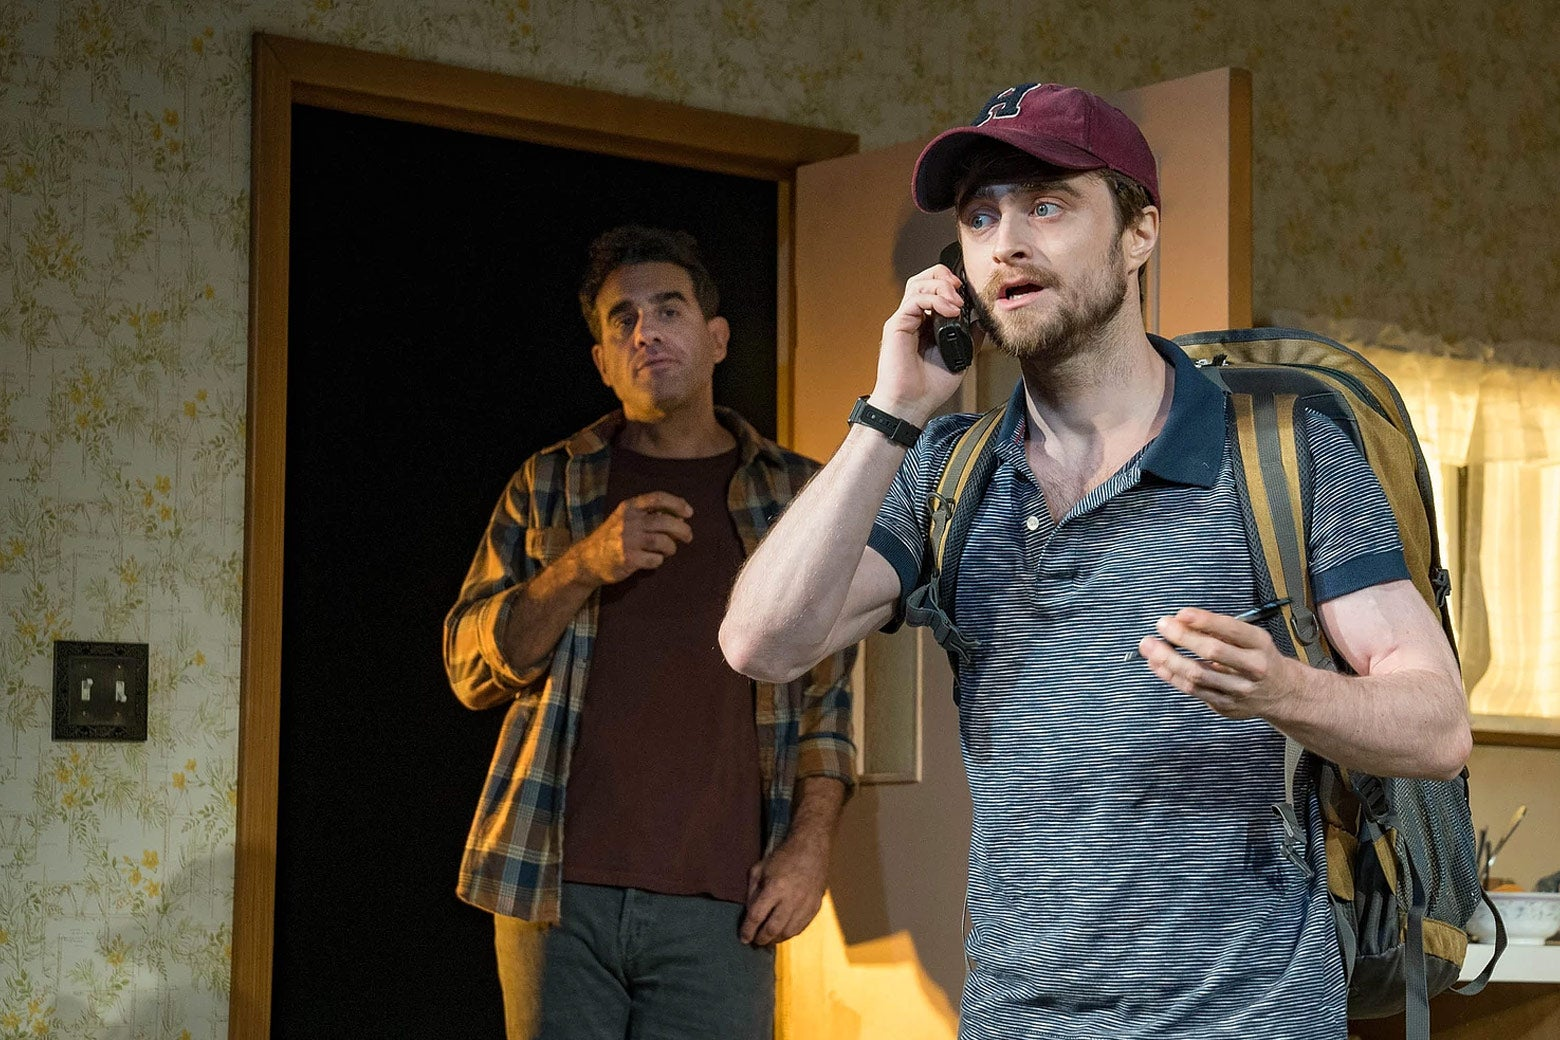 Daniel Radcliffe on the phone with a backpack on. Bobby Cannavale stands in the doorway.